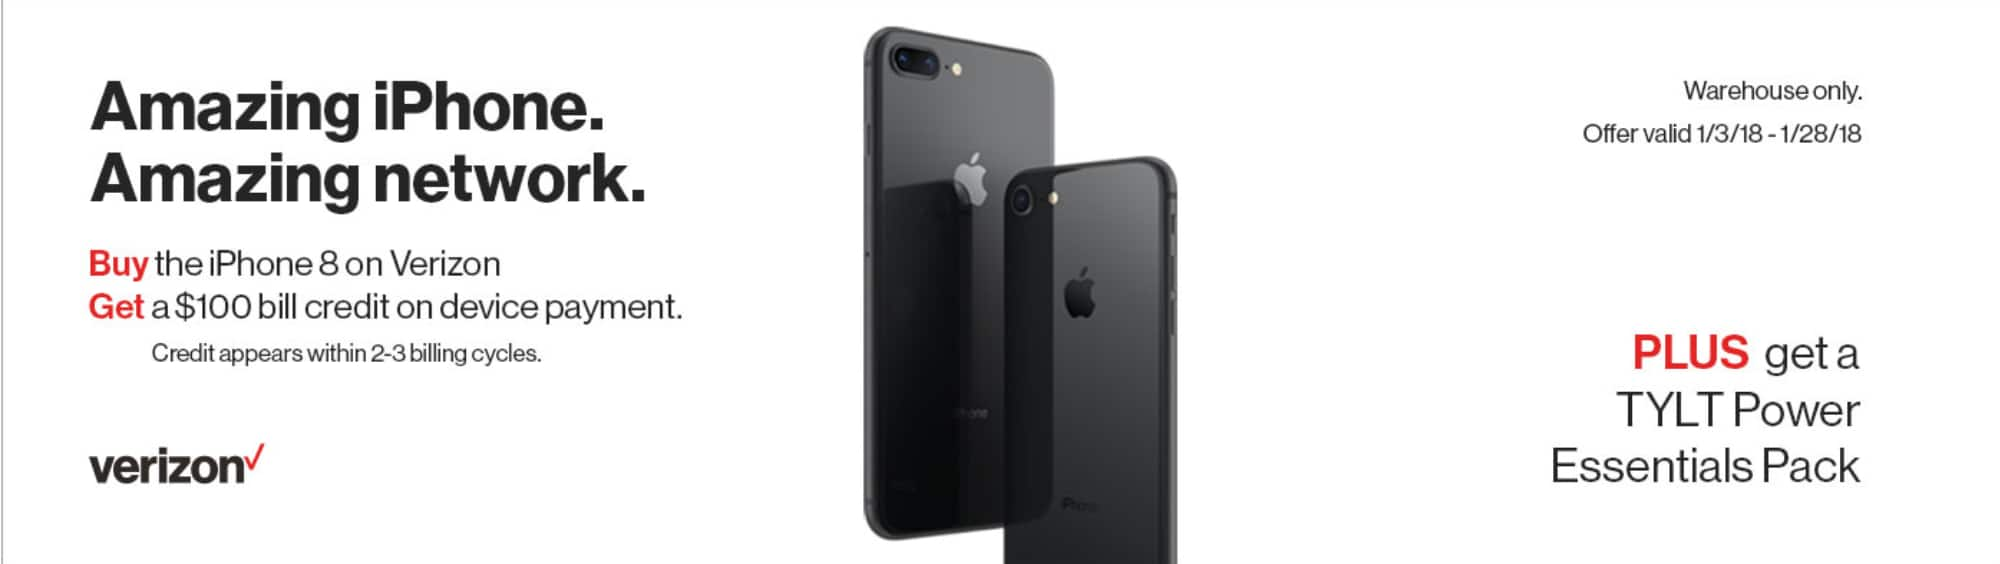 Costco $100 off Apple iPhone 8 / 8 Plus - IN STORE ONLY Starting 1/3/18